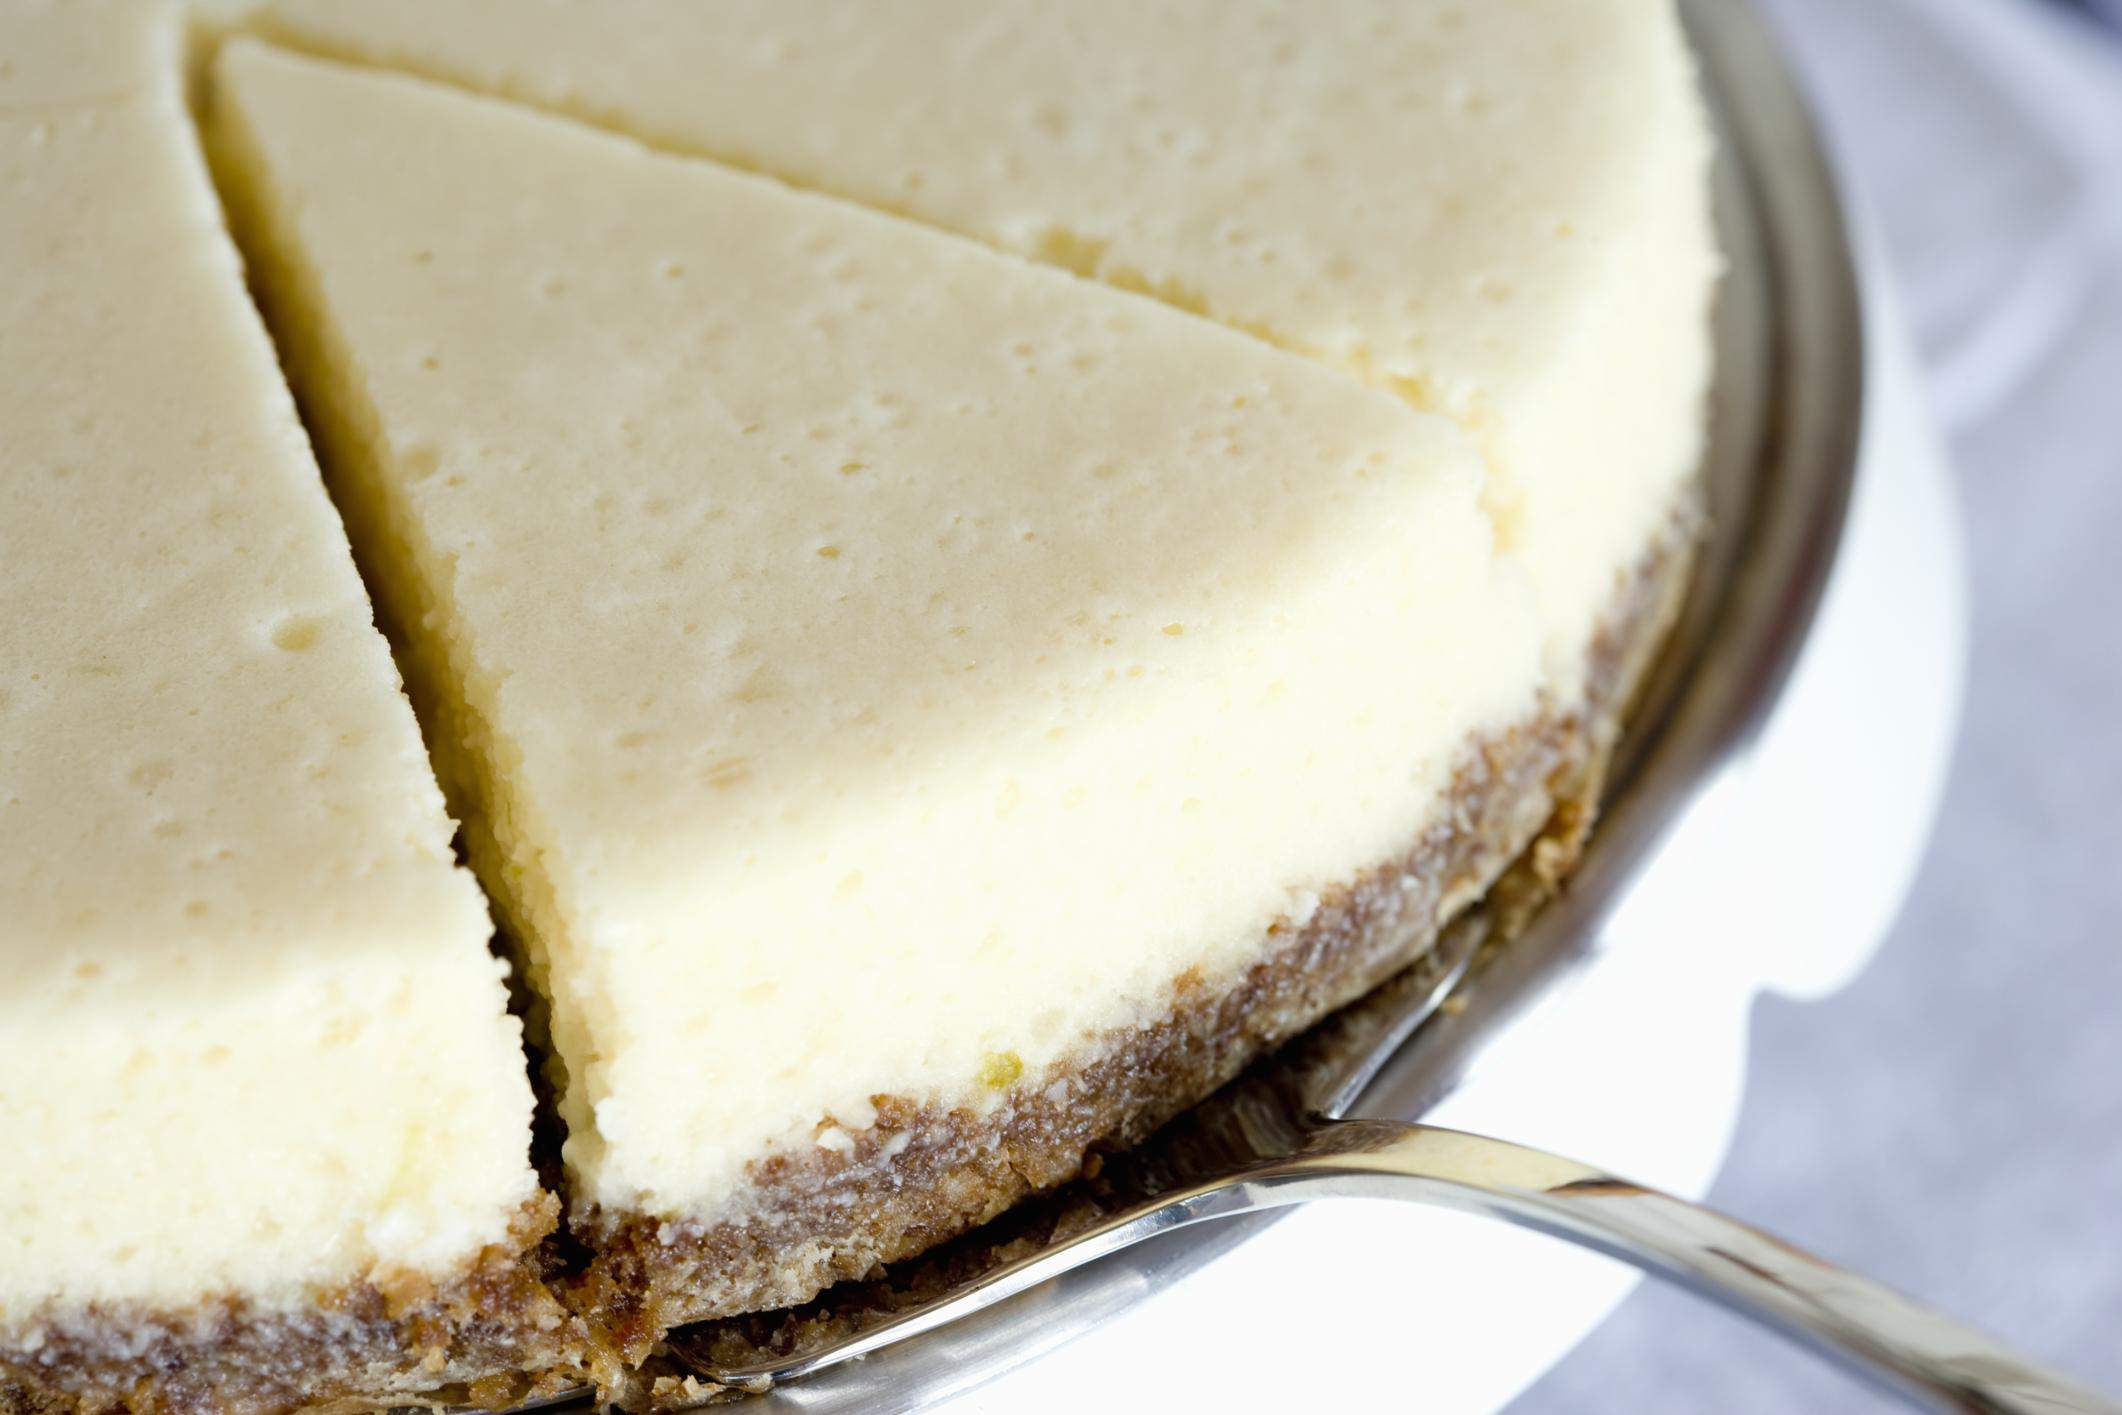 Slice of cheesecake on silver platter, close up